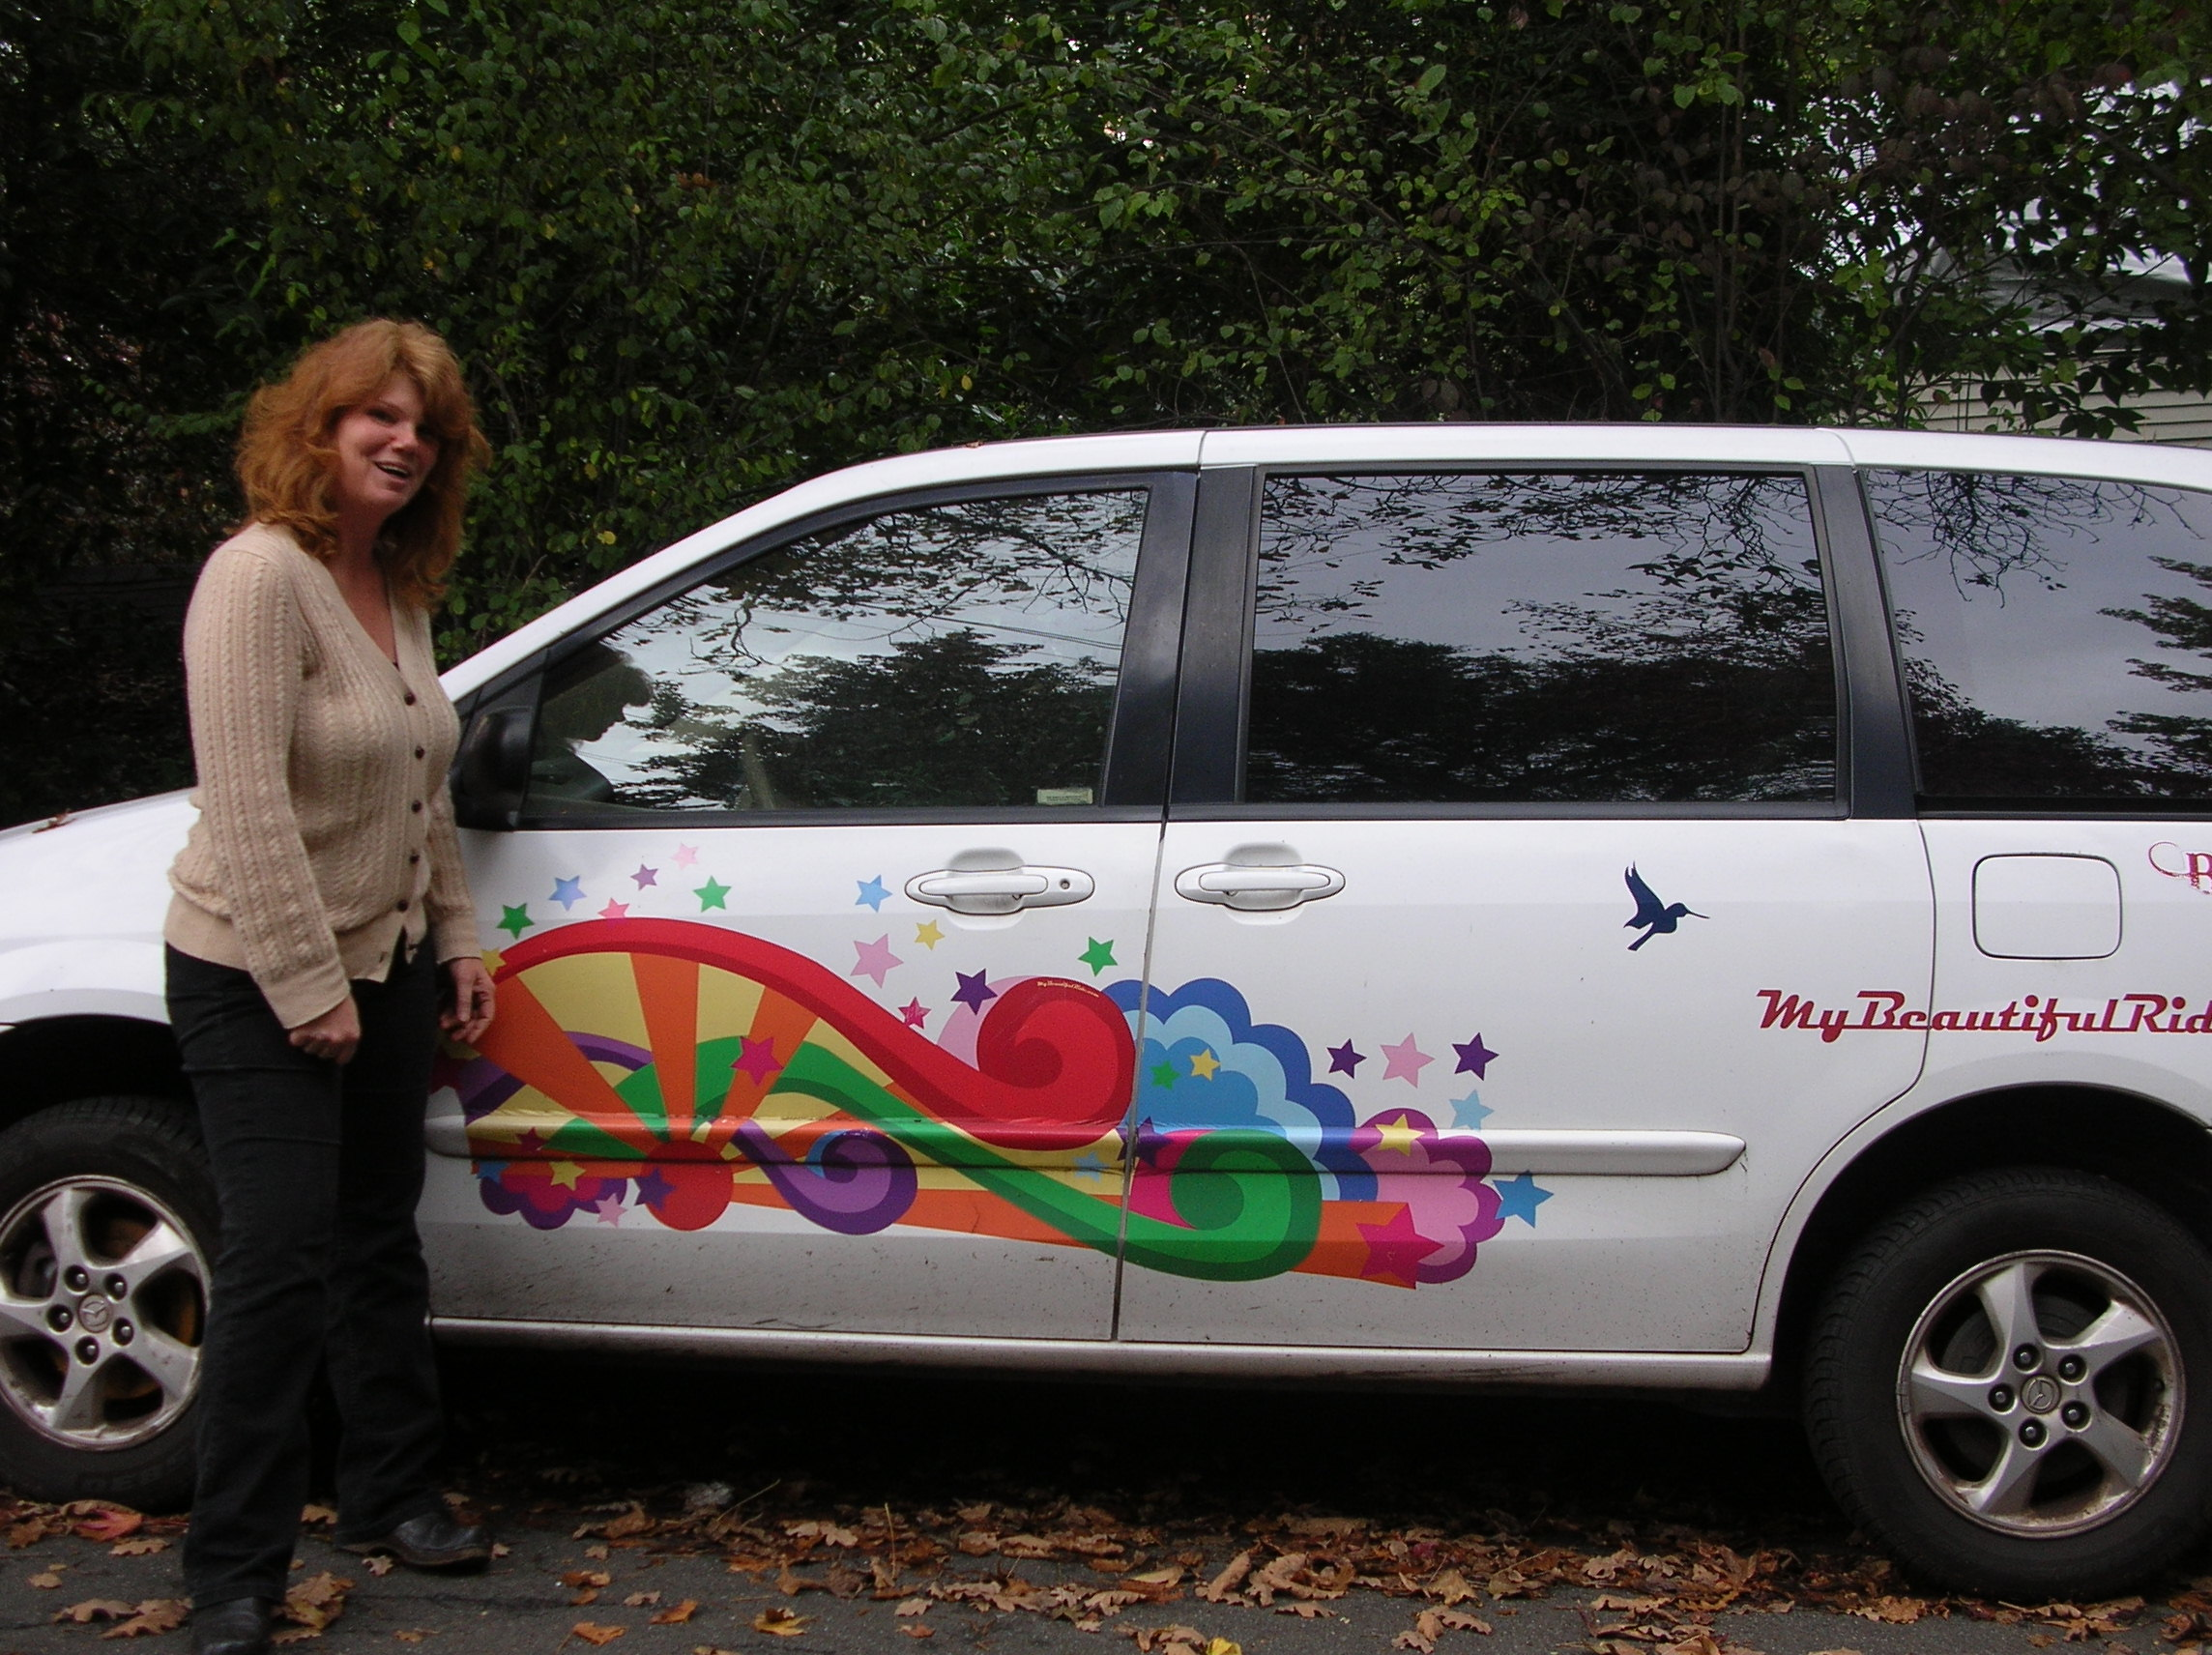 Design my car - Terry Cullinane And The My Beautiful Ride Car With Colorful Design Oakland Voices Debora Gordon